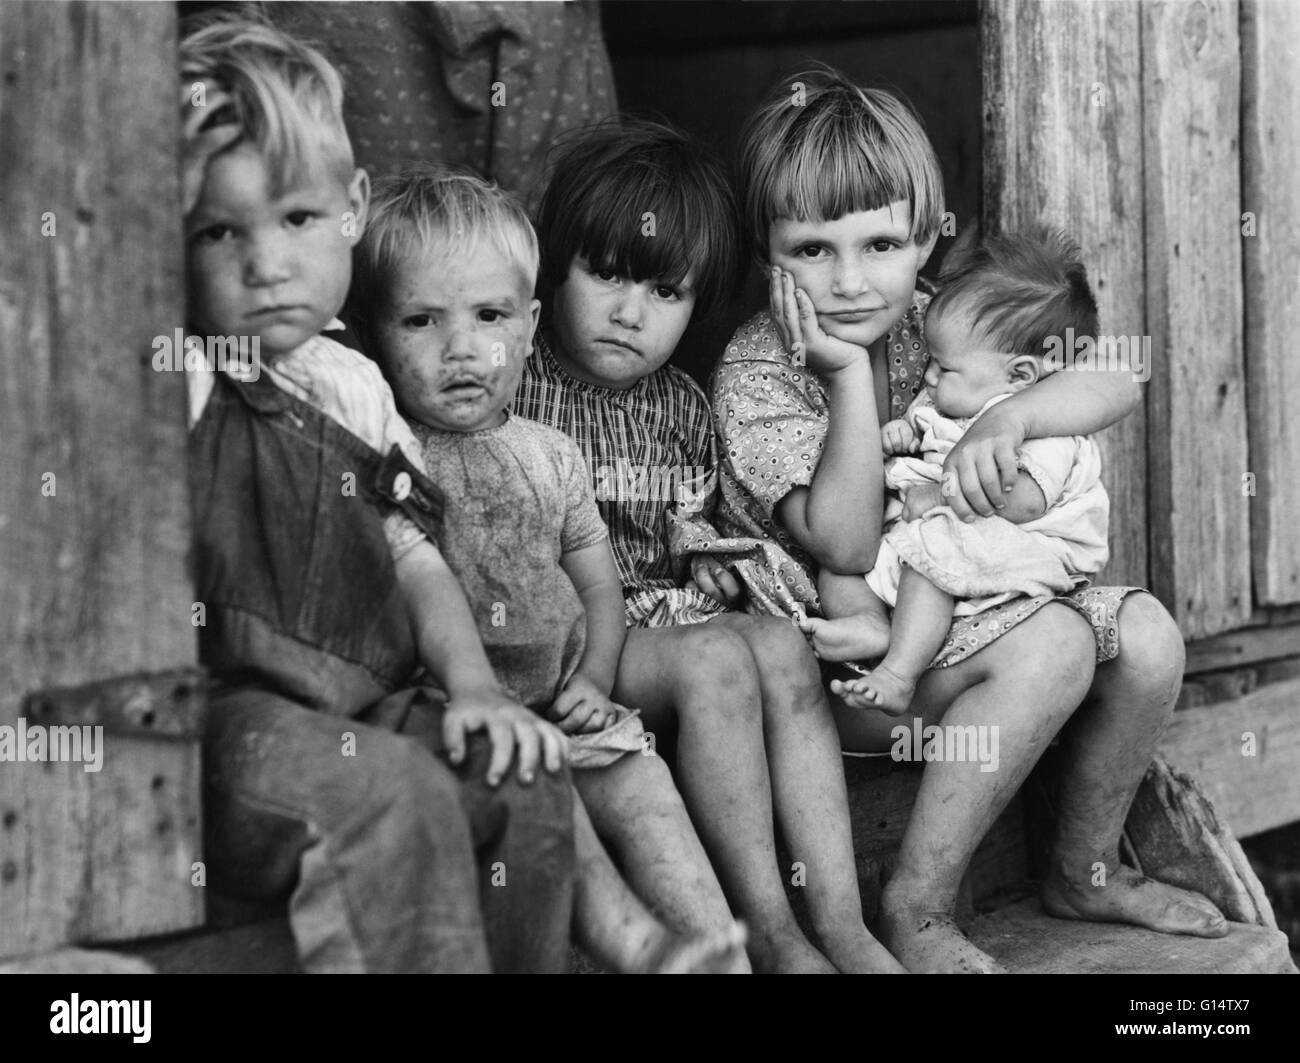 Sharecroppers' children in New Madrid County, Missouri, circa 1940. A Farm Security Administration photograph - Stock Image